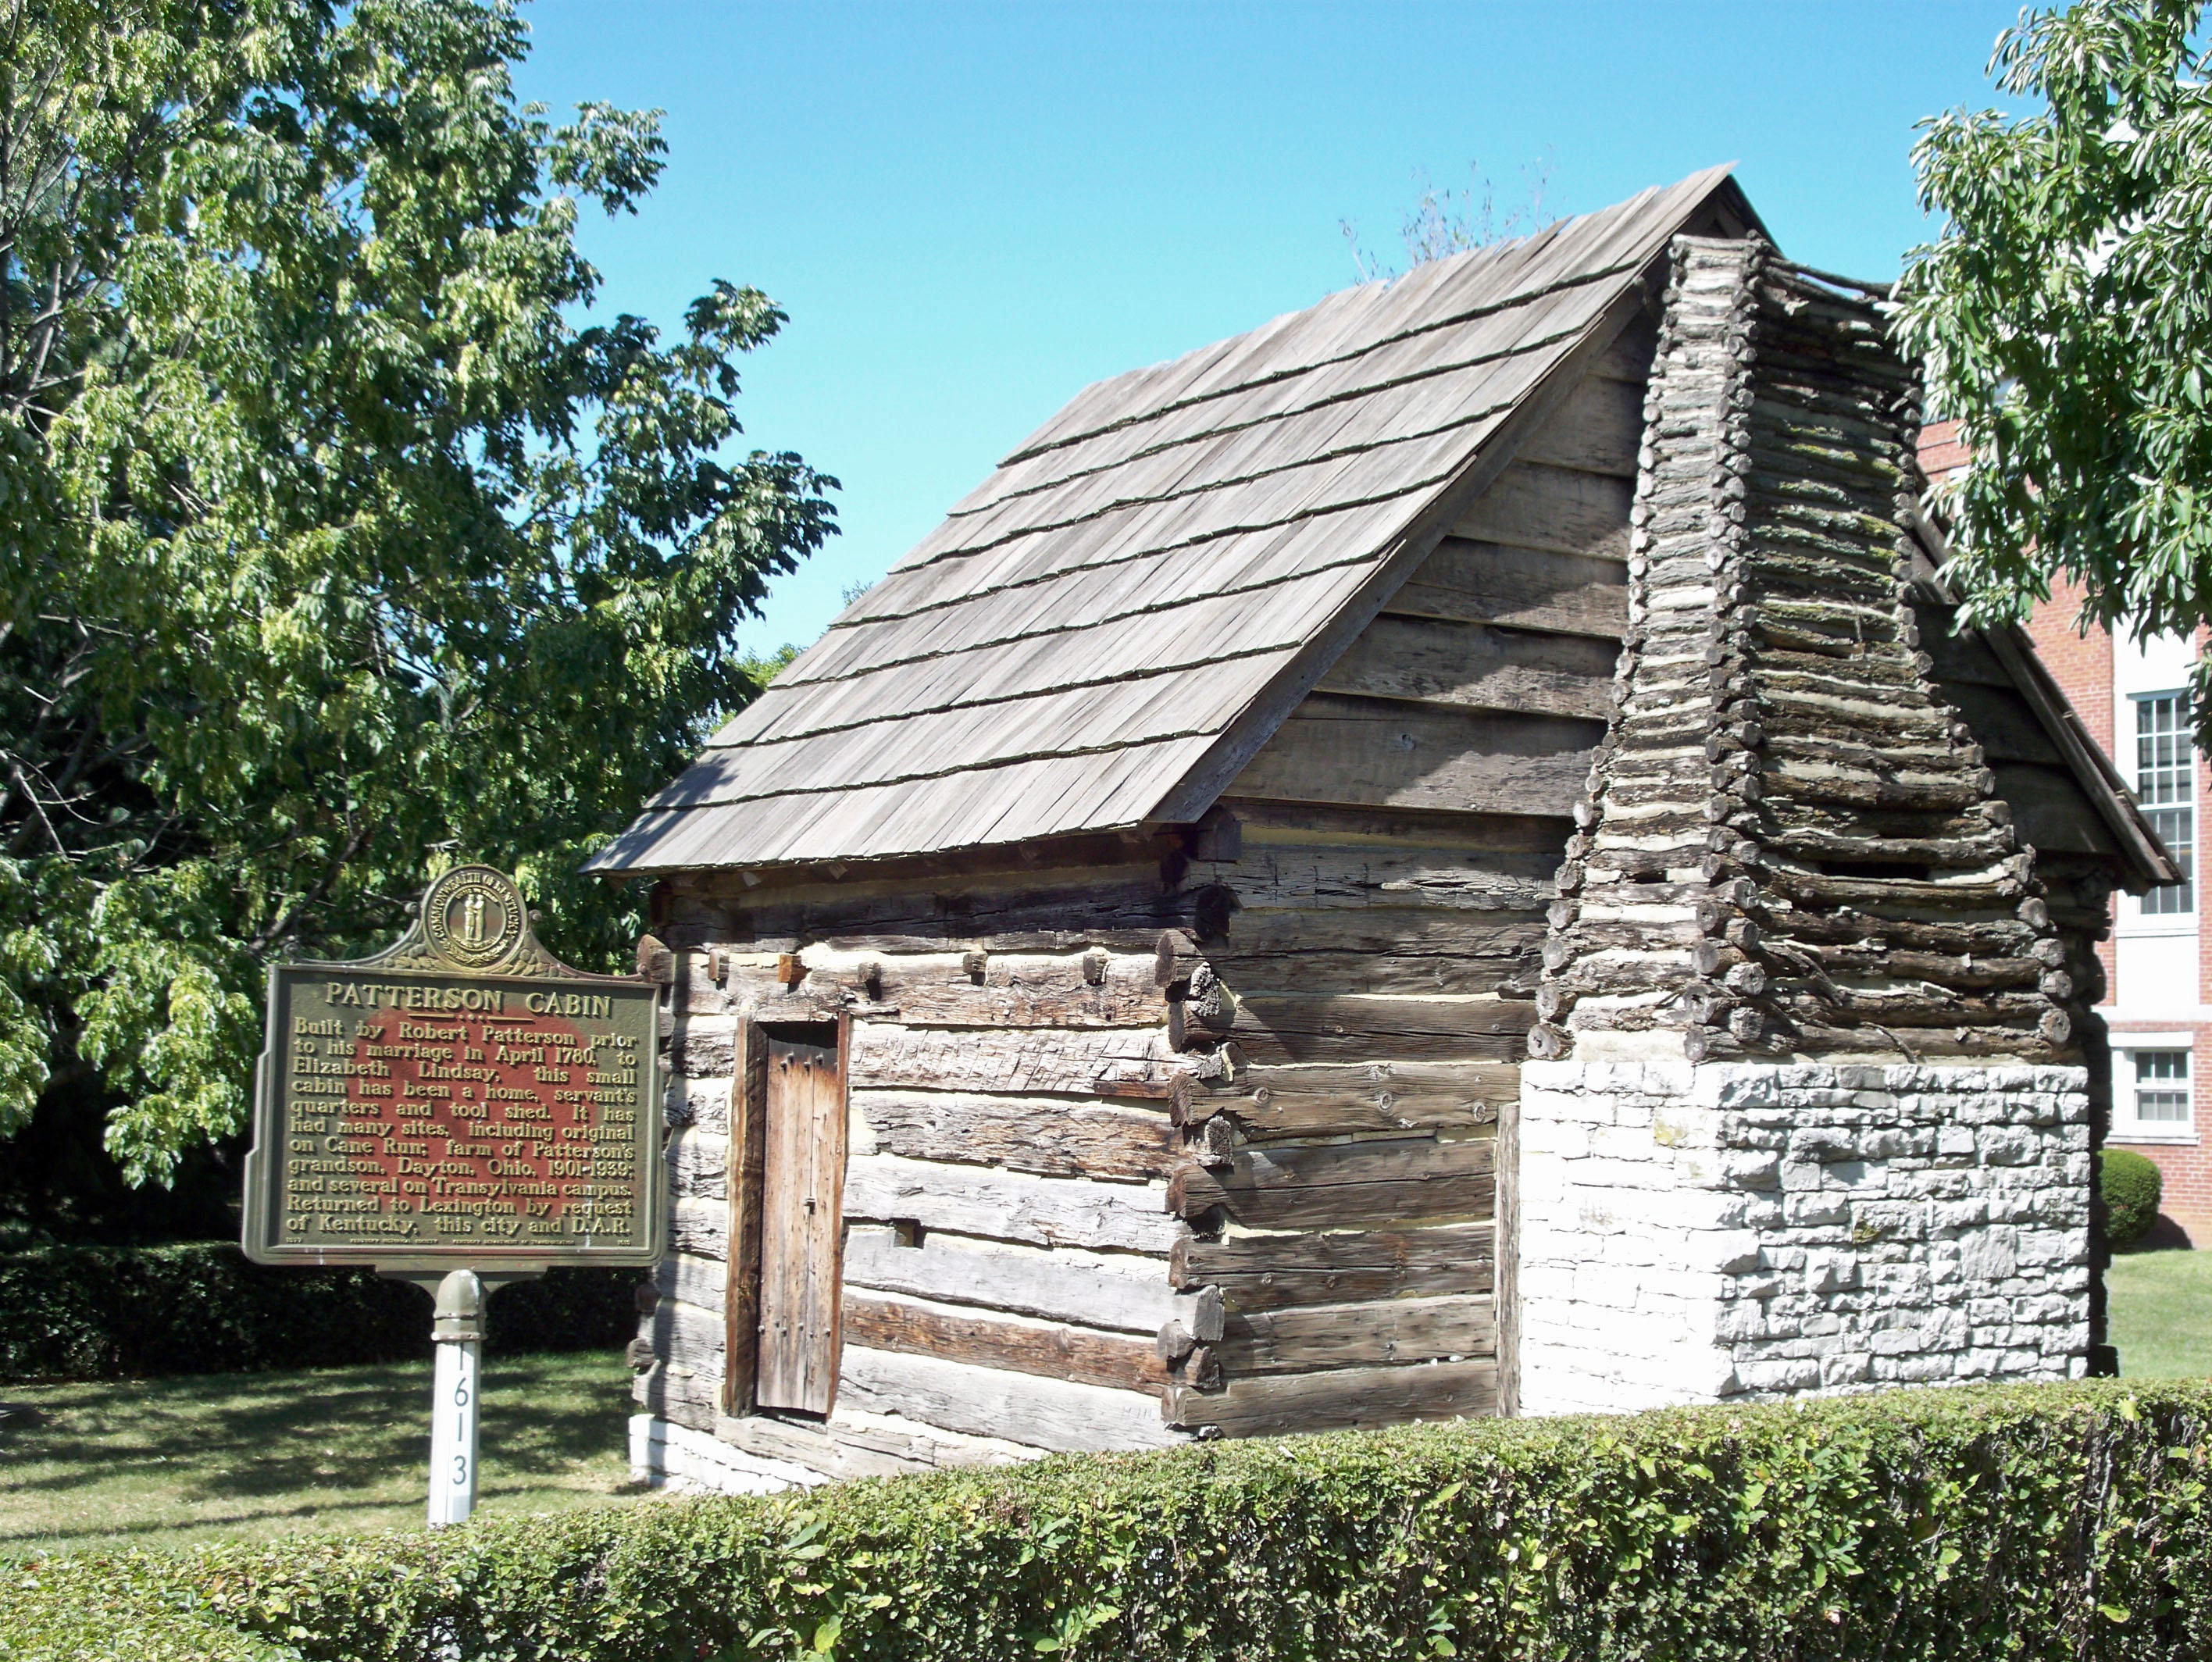 This cabin, built by Robert Patterson, one of the founder's of Lexington, is preserved on the campus of Transylvania University. The cabin was one of the first built in Lexington.